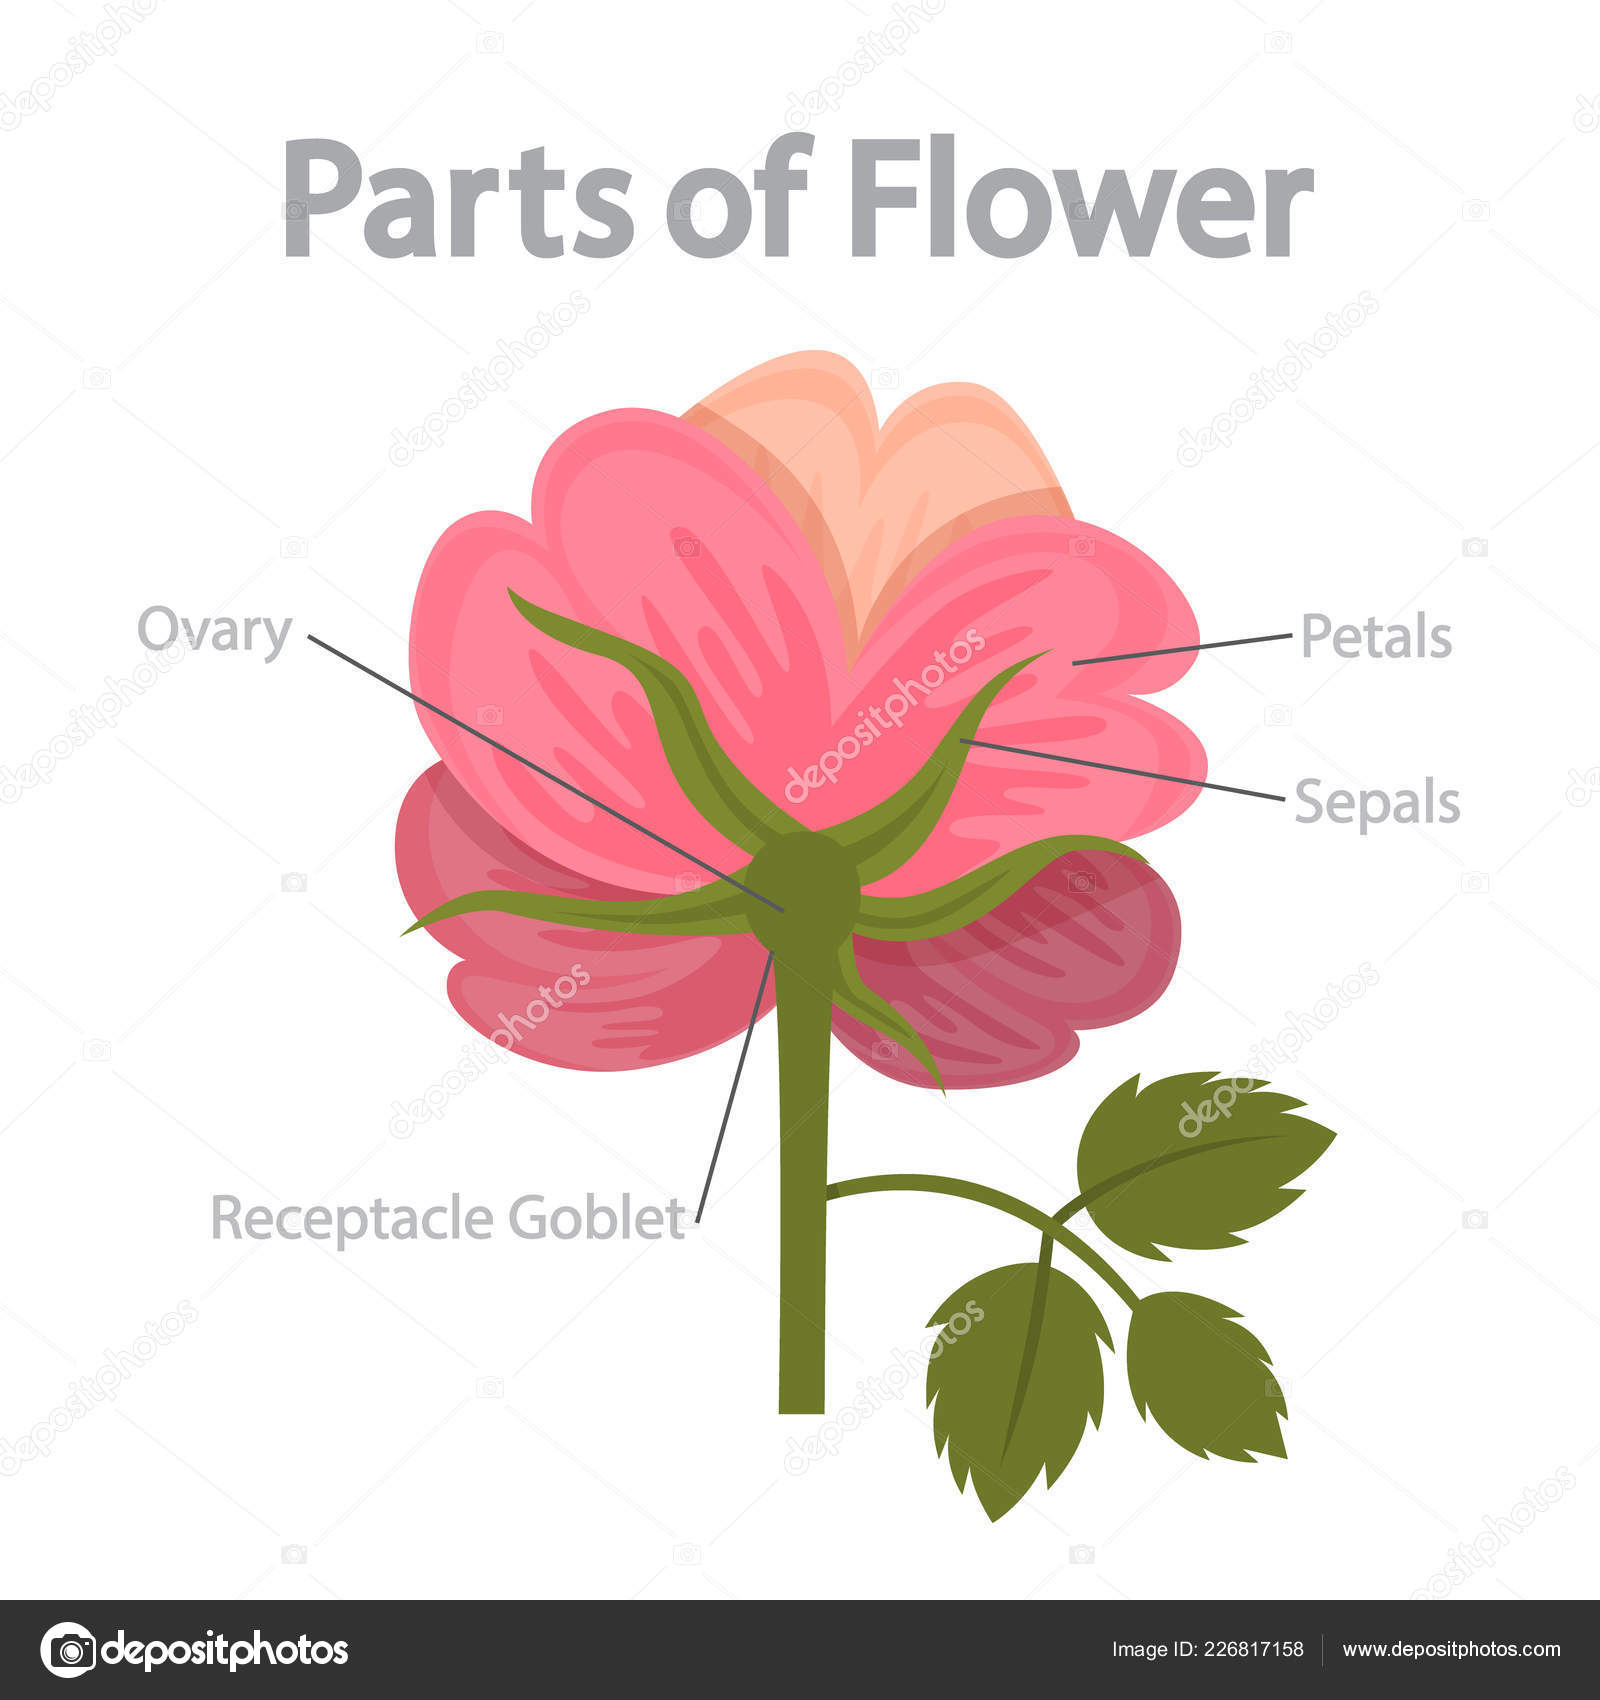 Flower Part Infographics Biology Education Concept Flora Anatomy